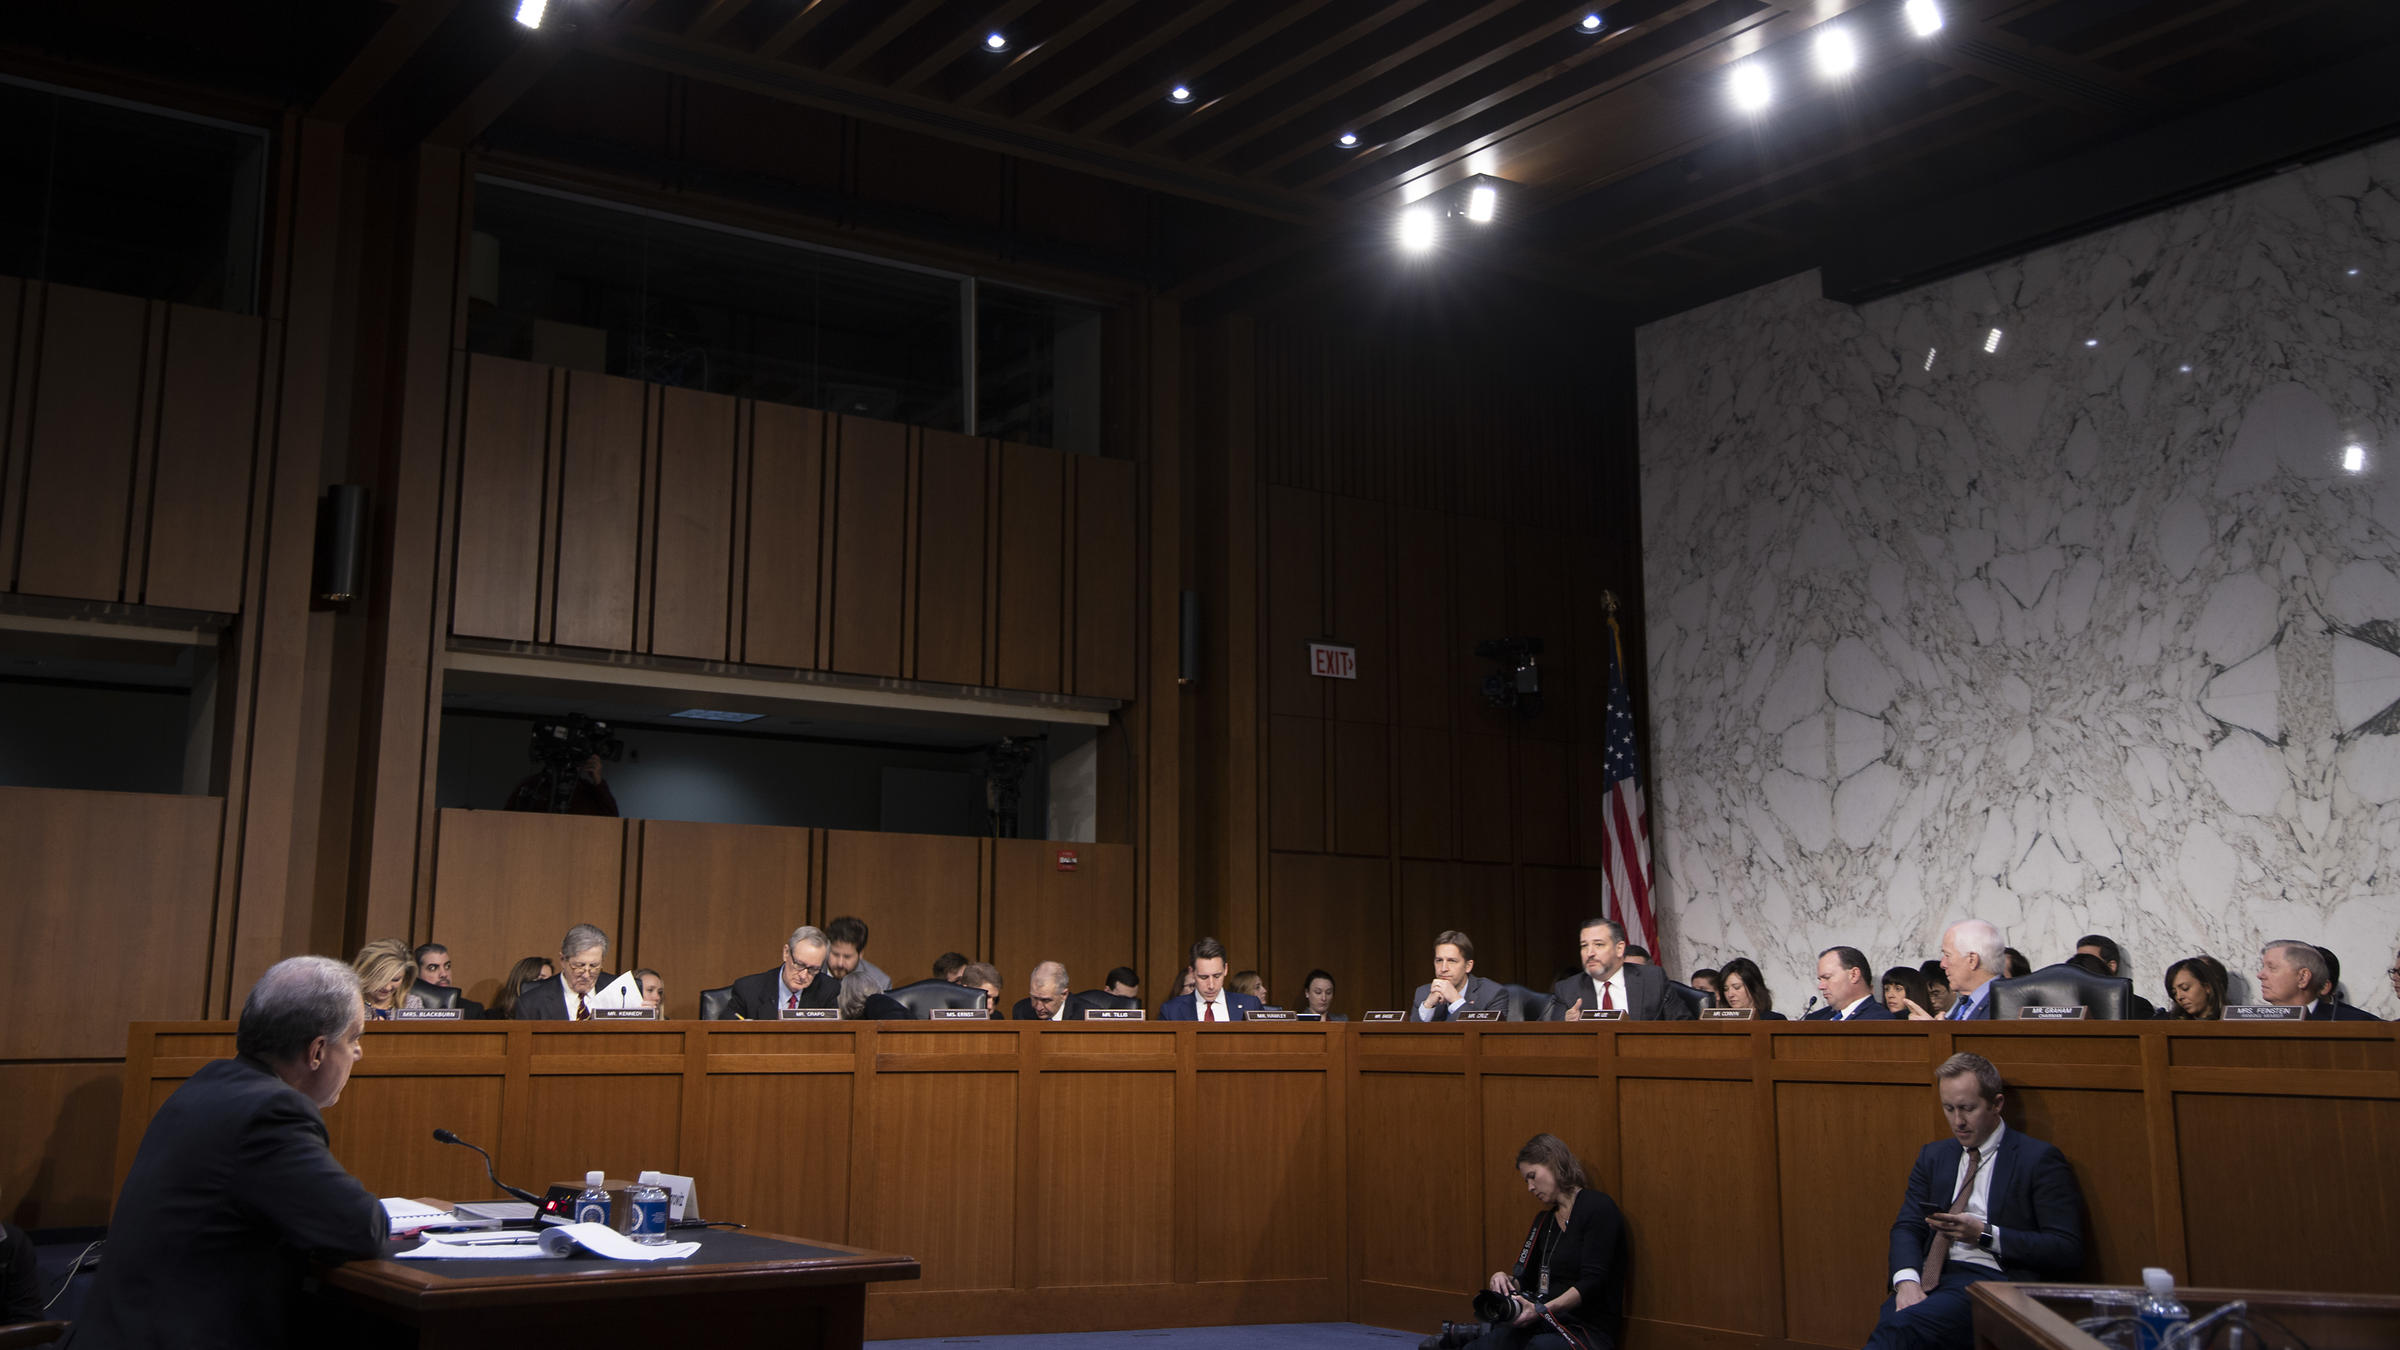 4 Unanswered Questions After The Justice Watchdog's Senate Briefing